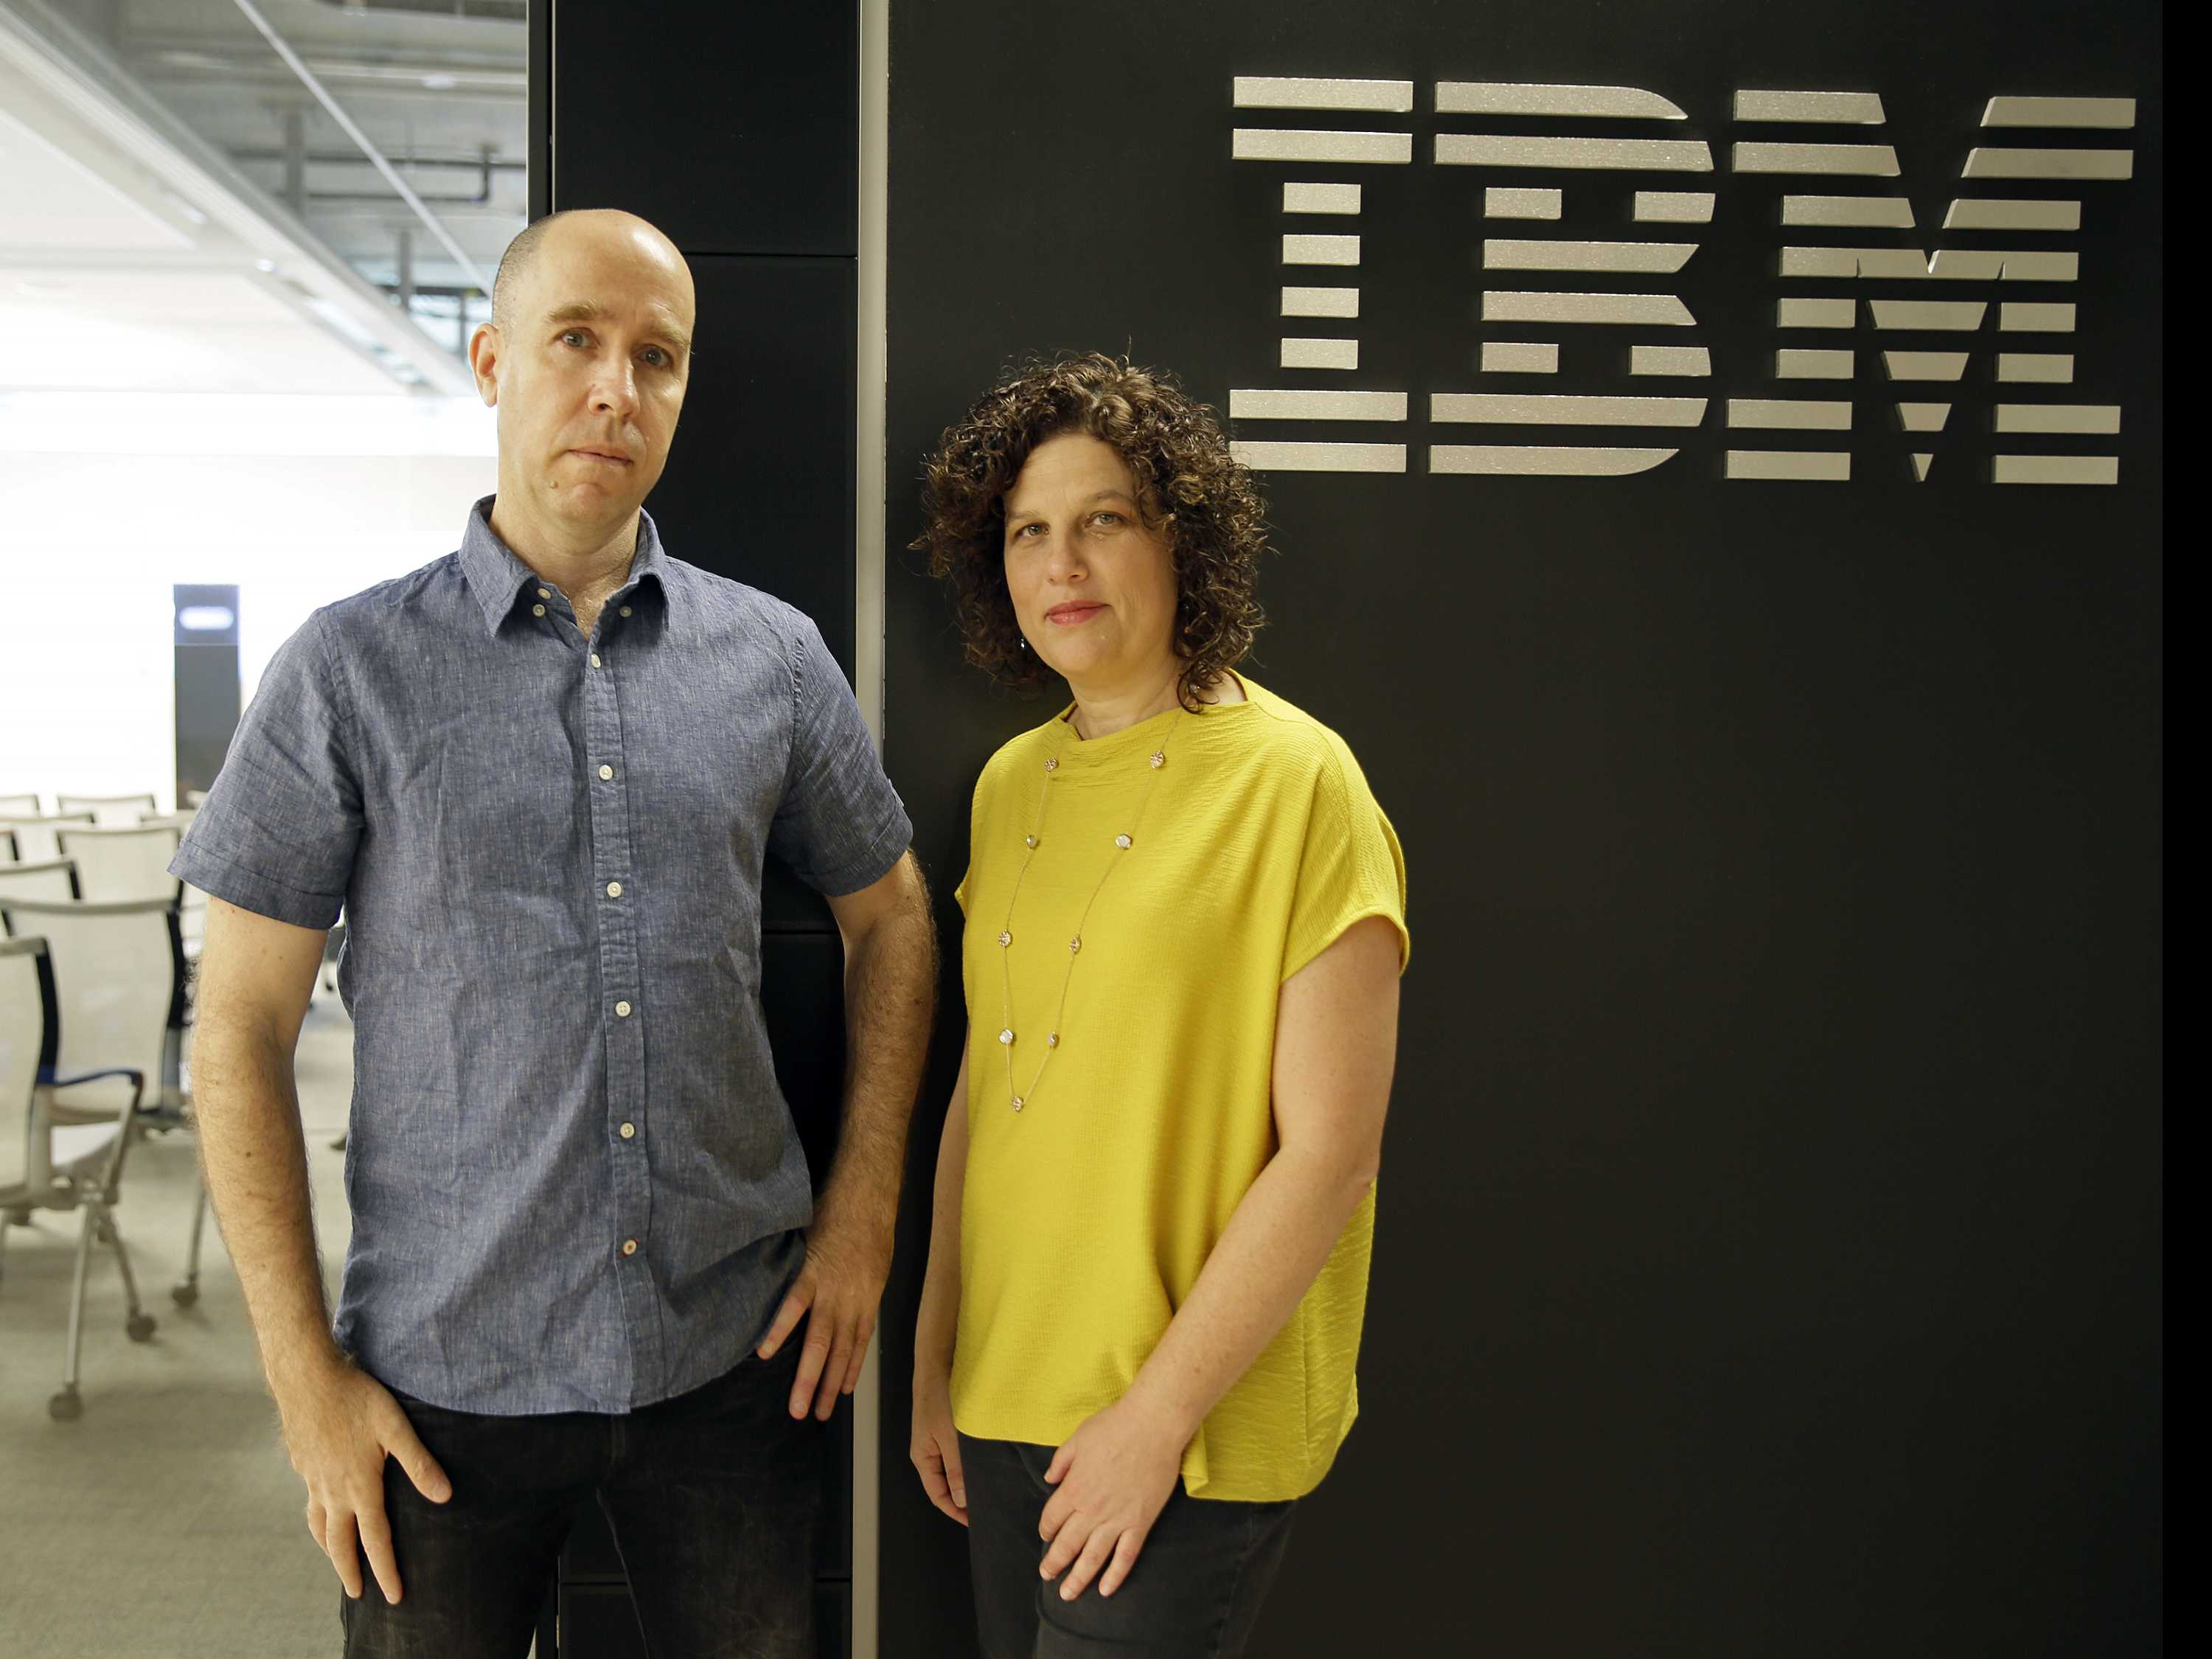 IBM Computer Proves Formidable Against 2 Human Debaters